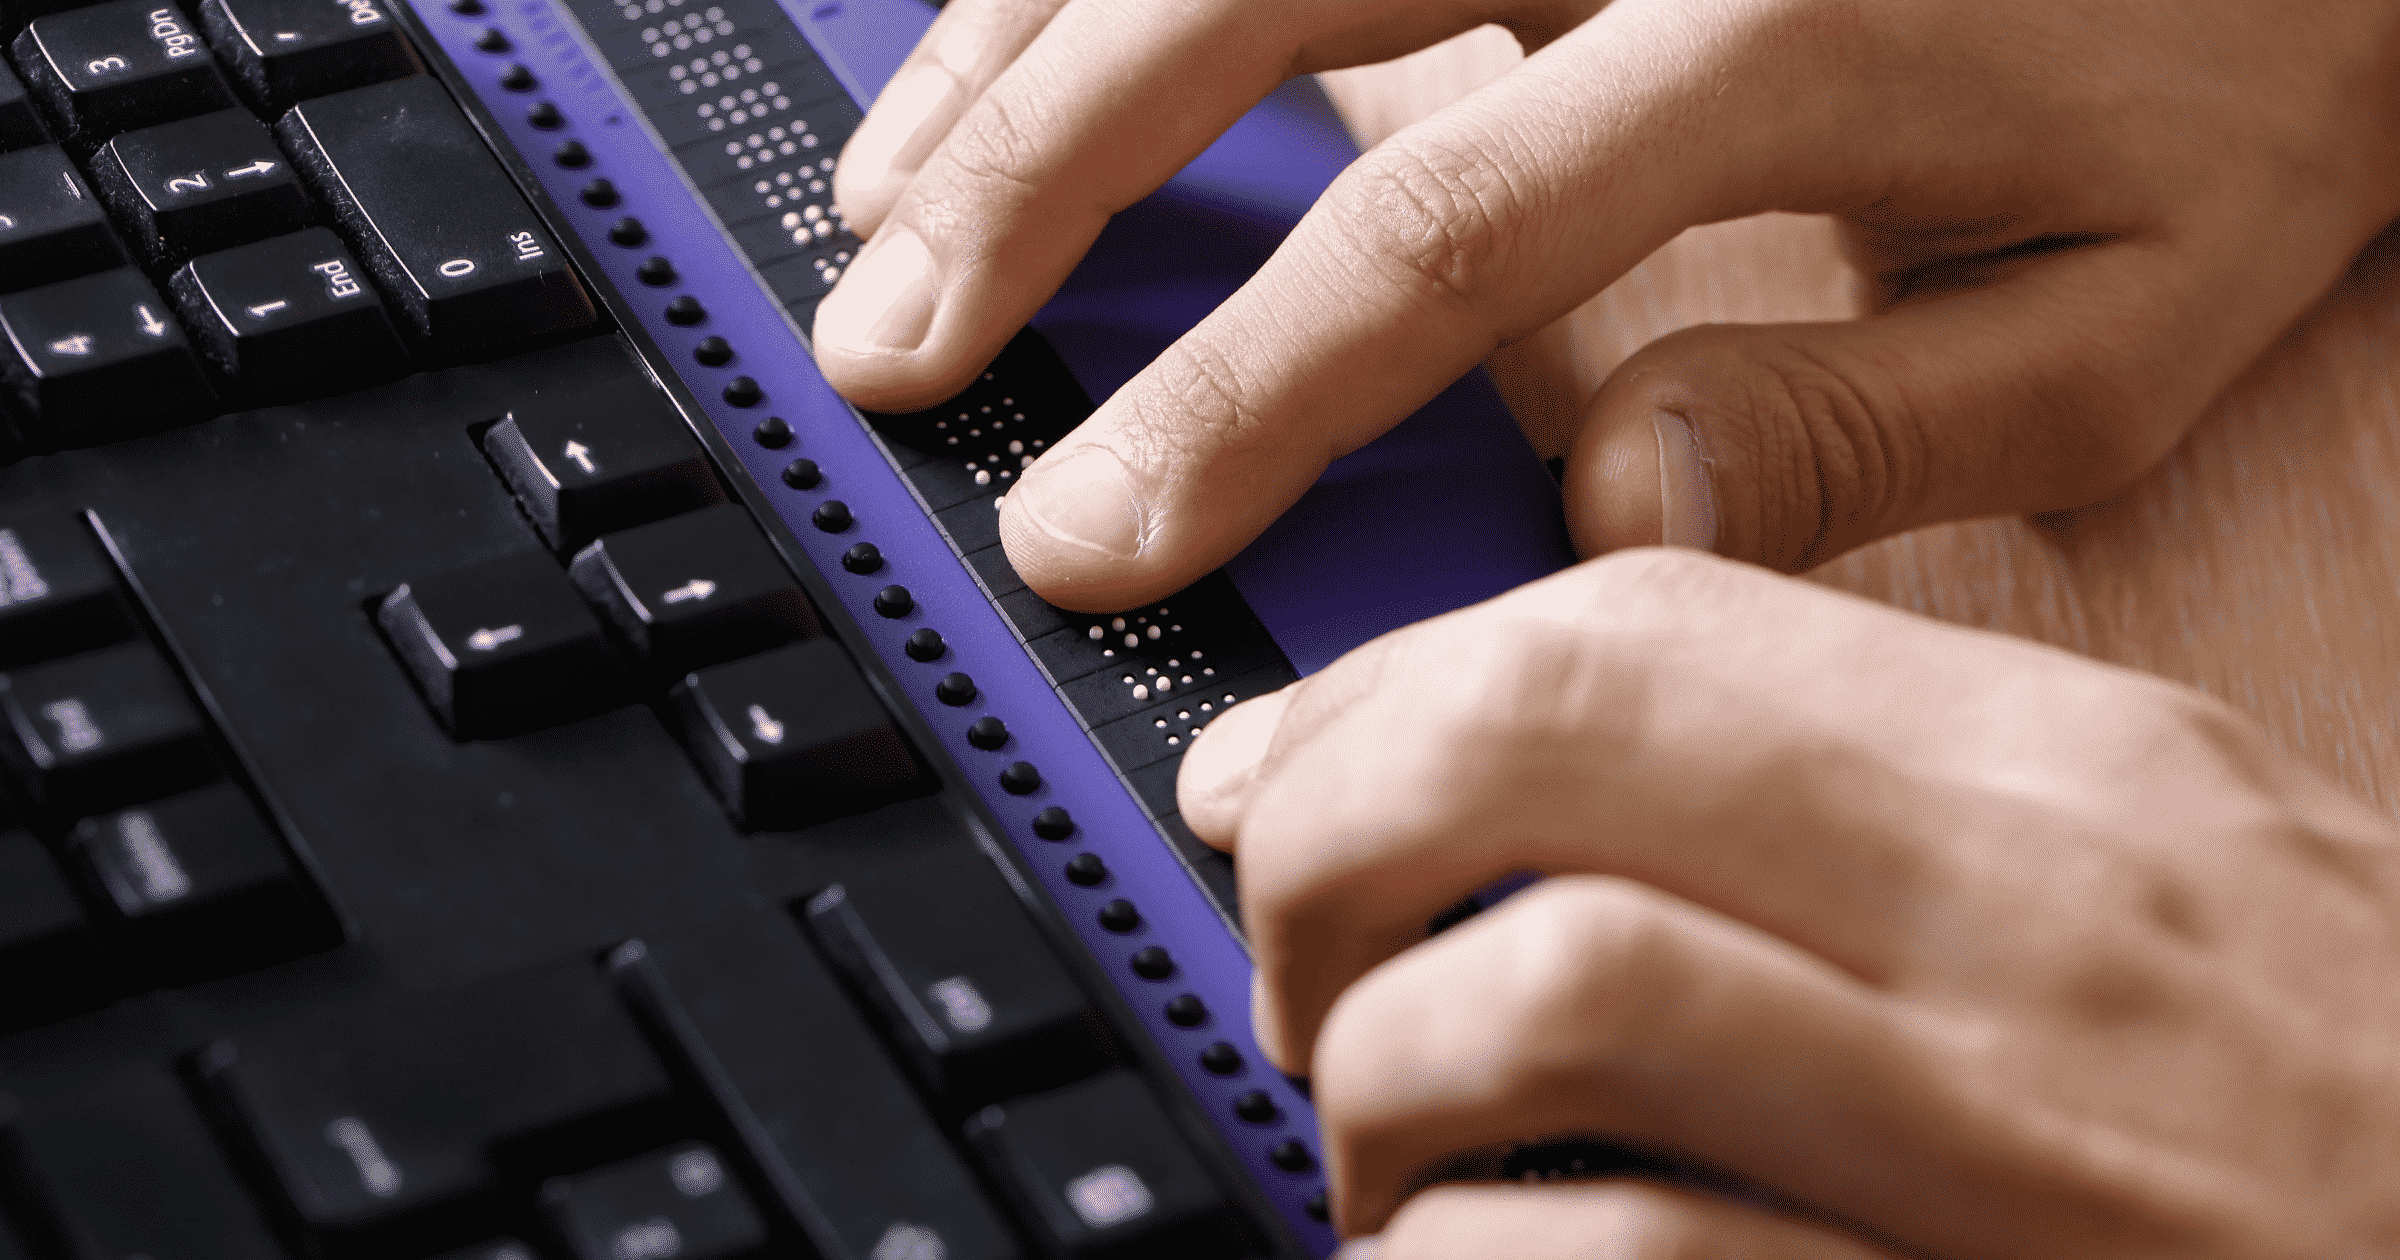 Person using Braille adaptive technology. Why Should your Website be ADA Compliant Blog